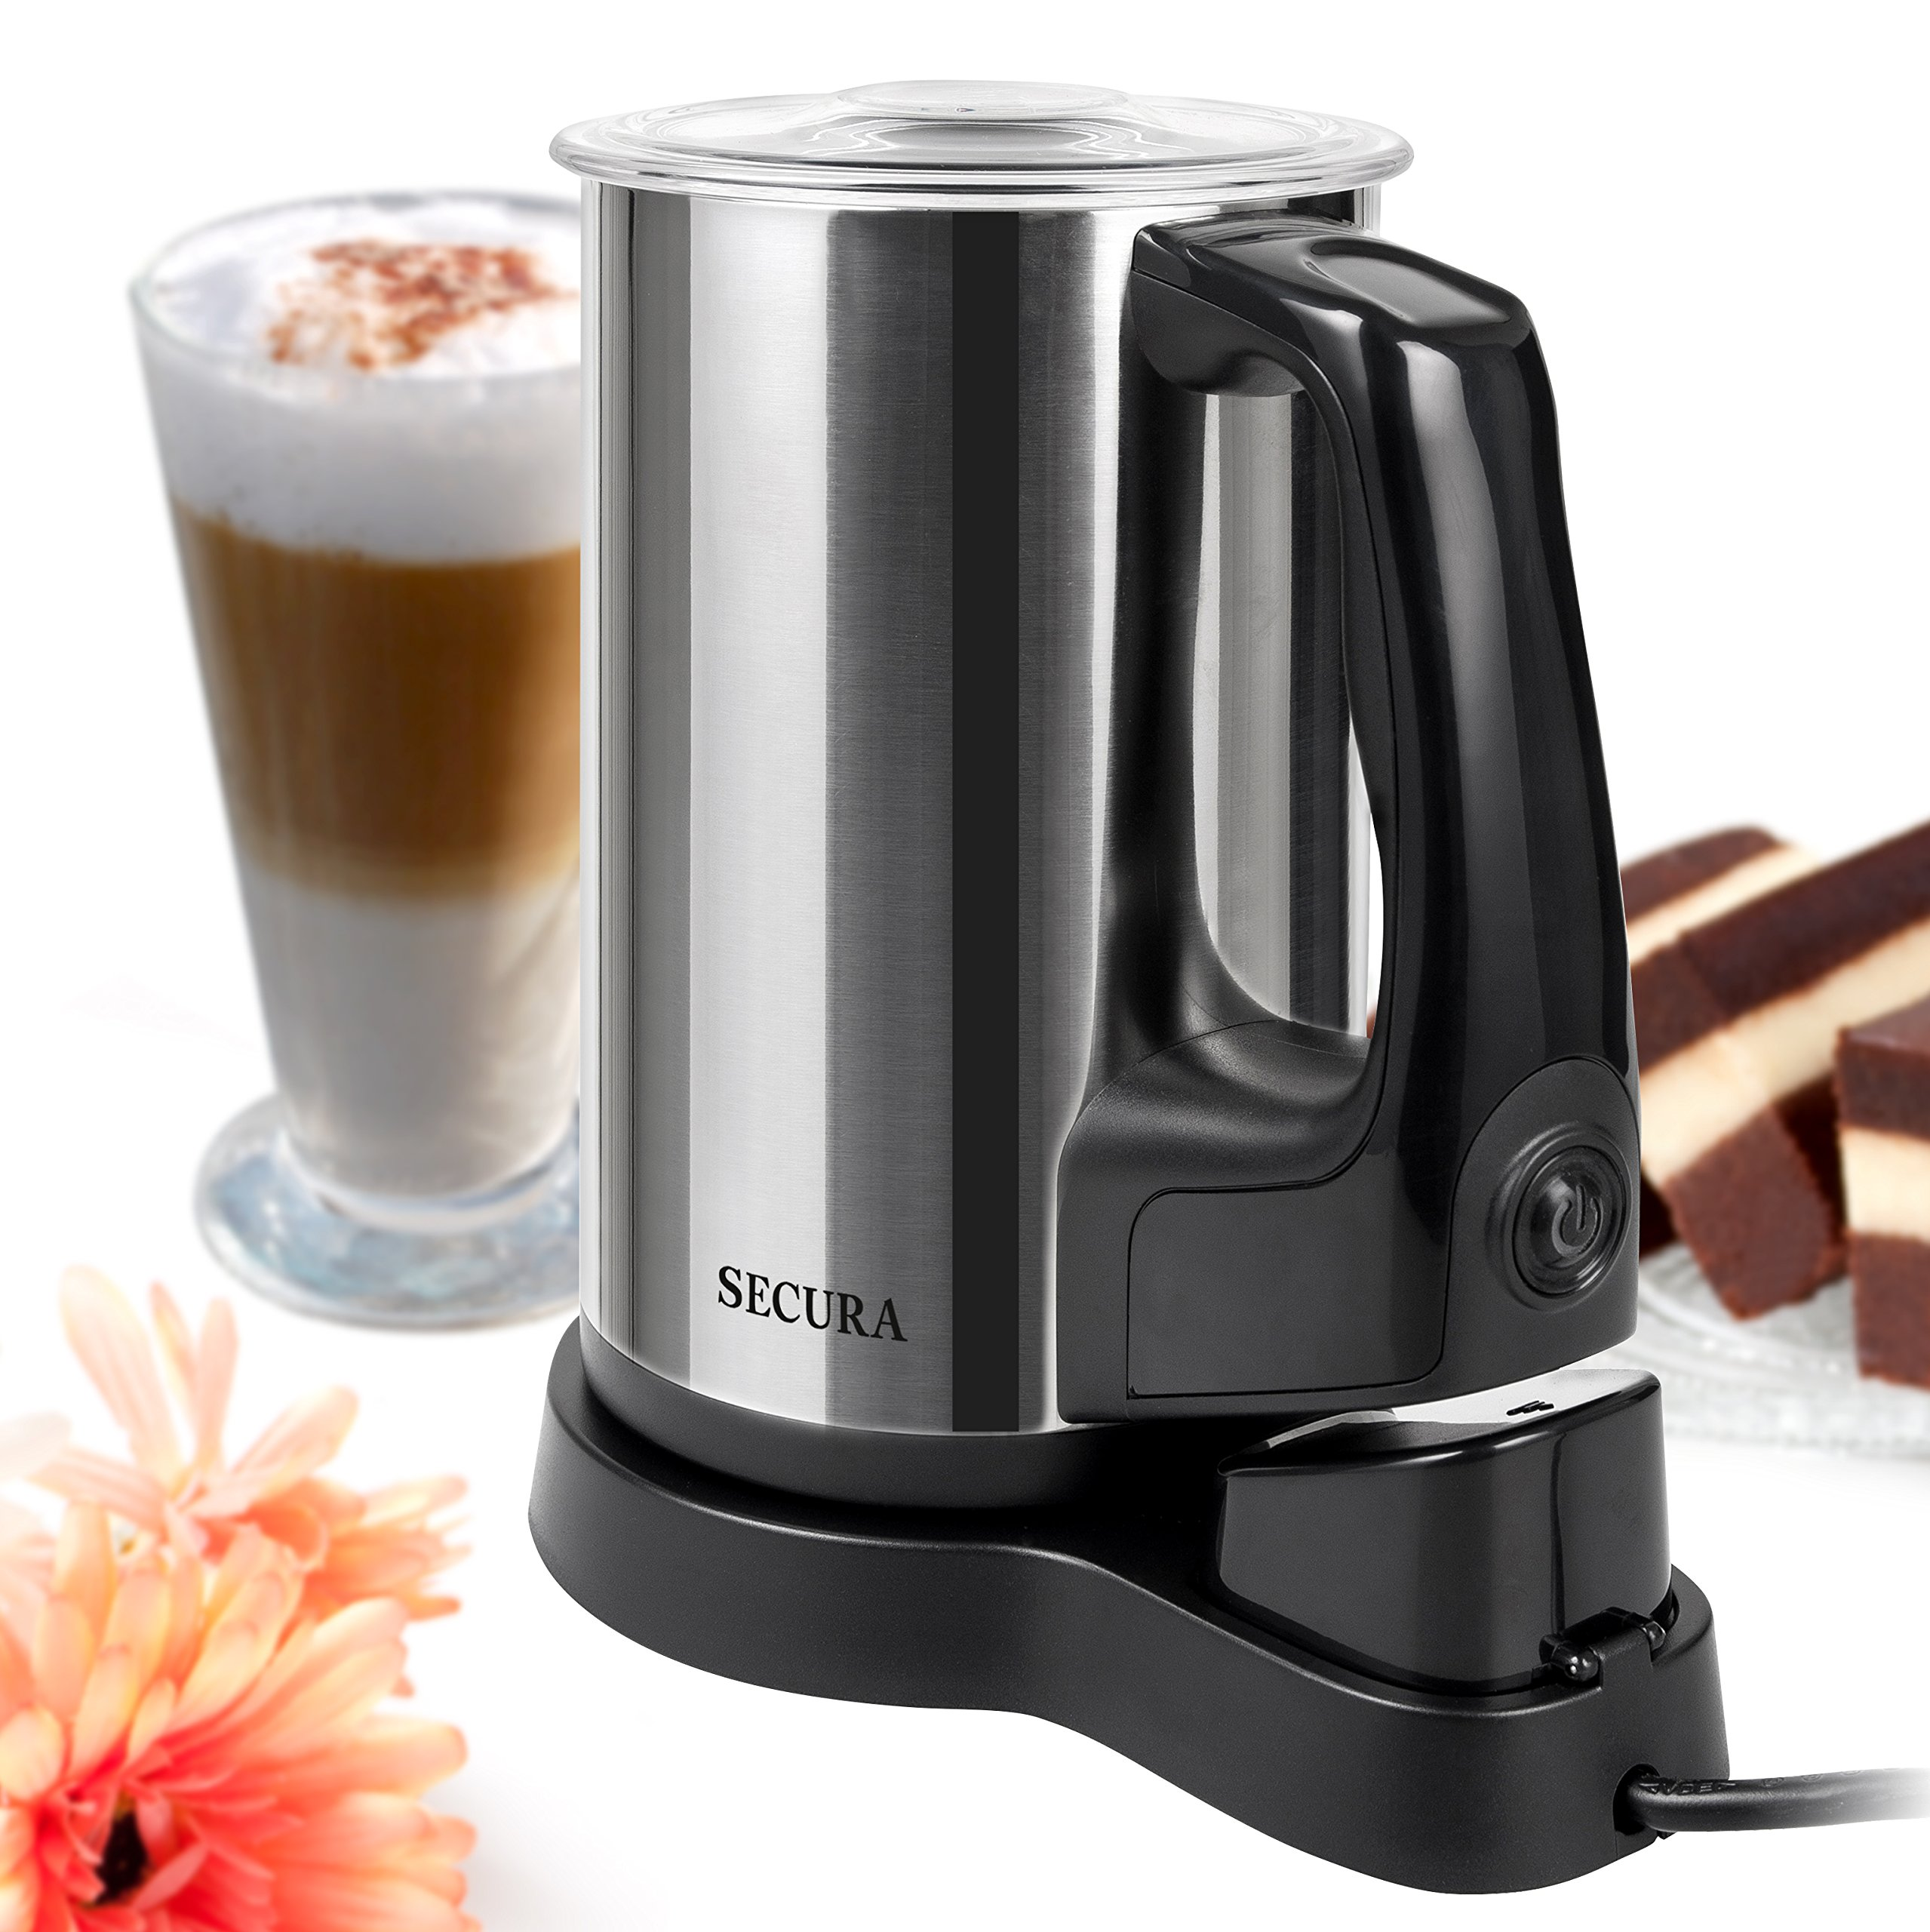 Secura Automatic Electric Milk Frother and Warmer, 8.45 oz Stainless Steel Milk Steamer by Secura (Image #1)